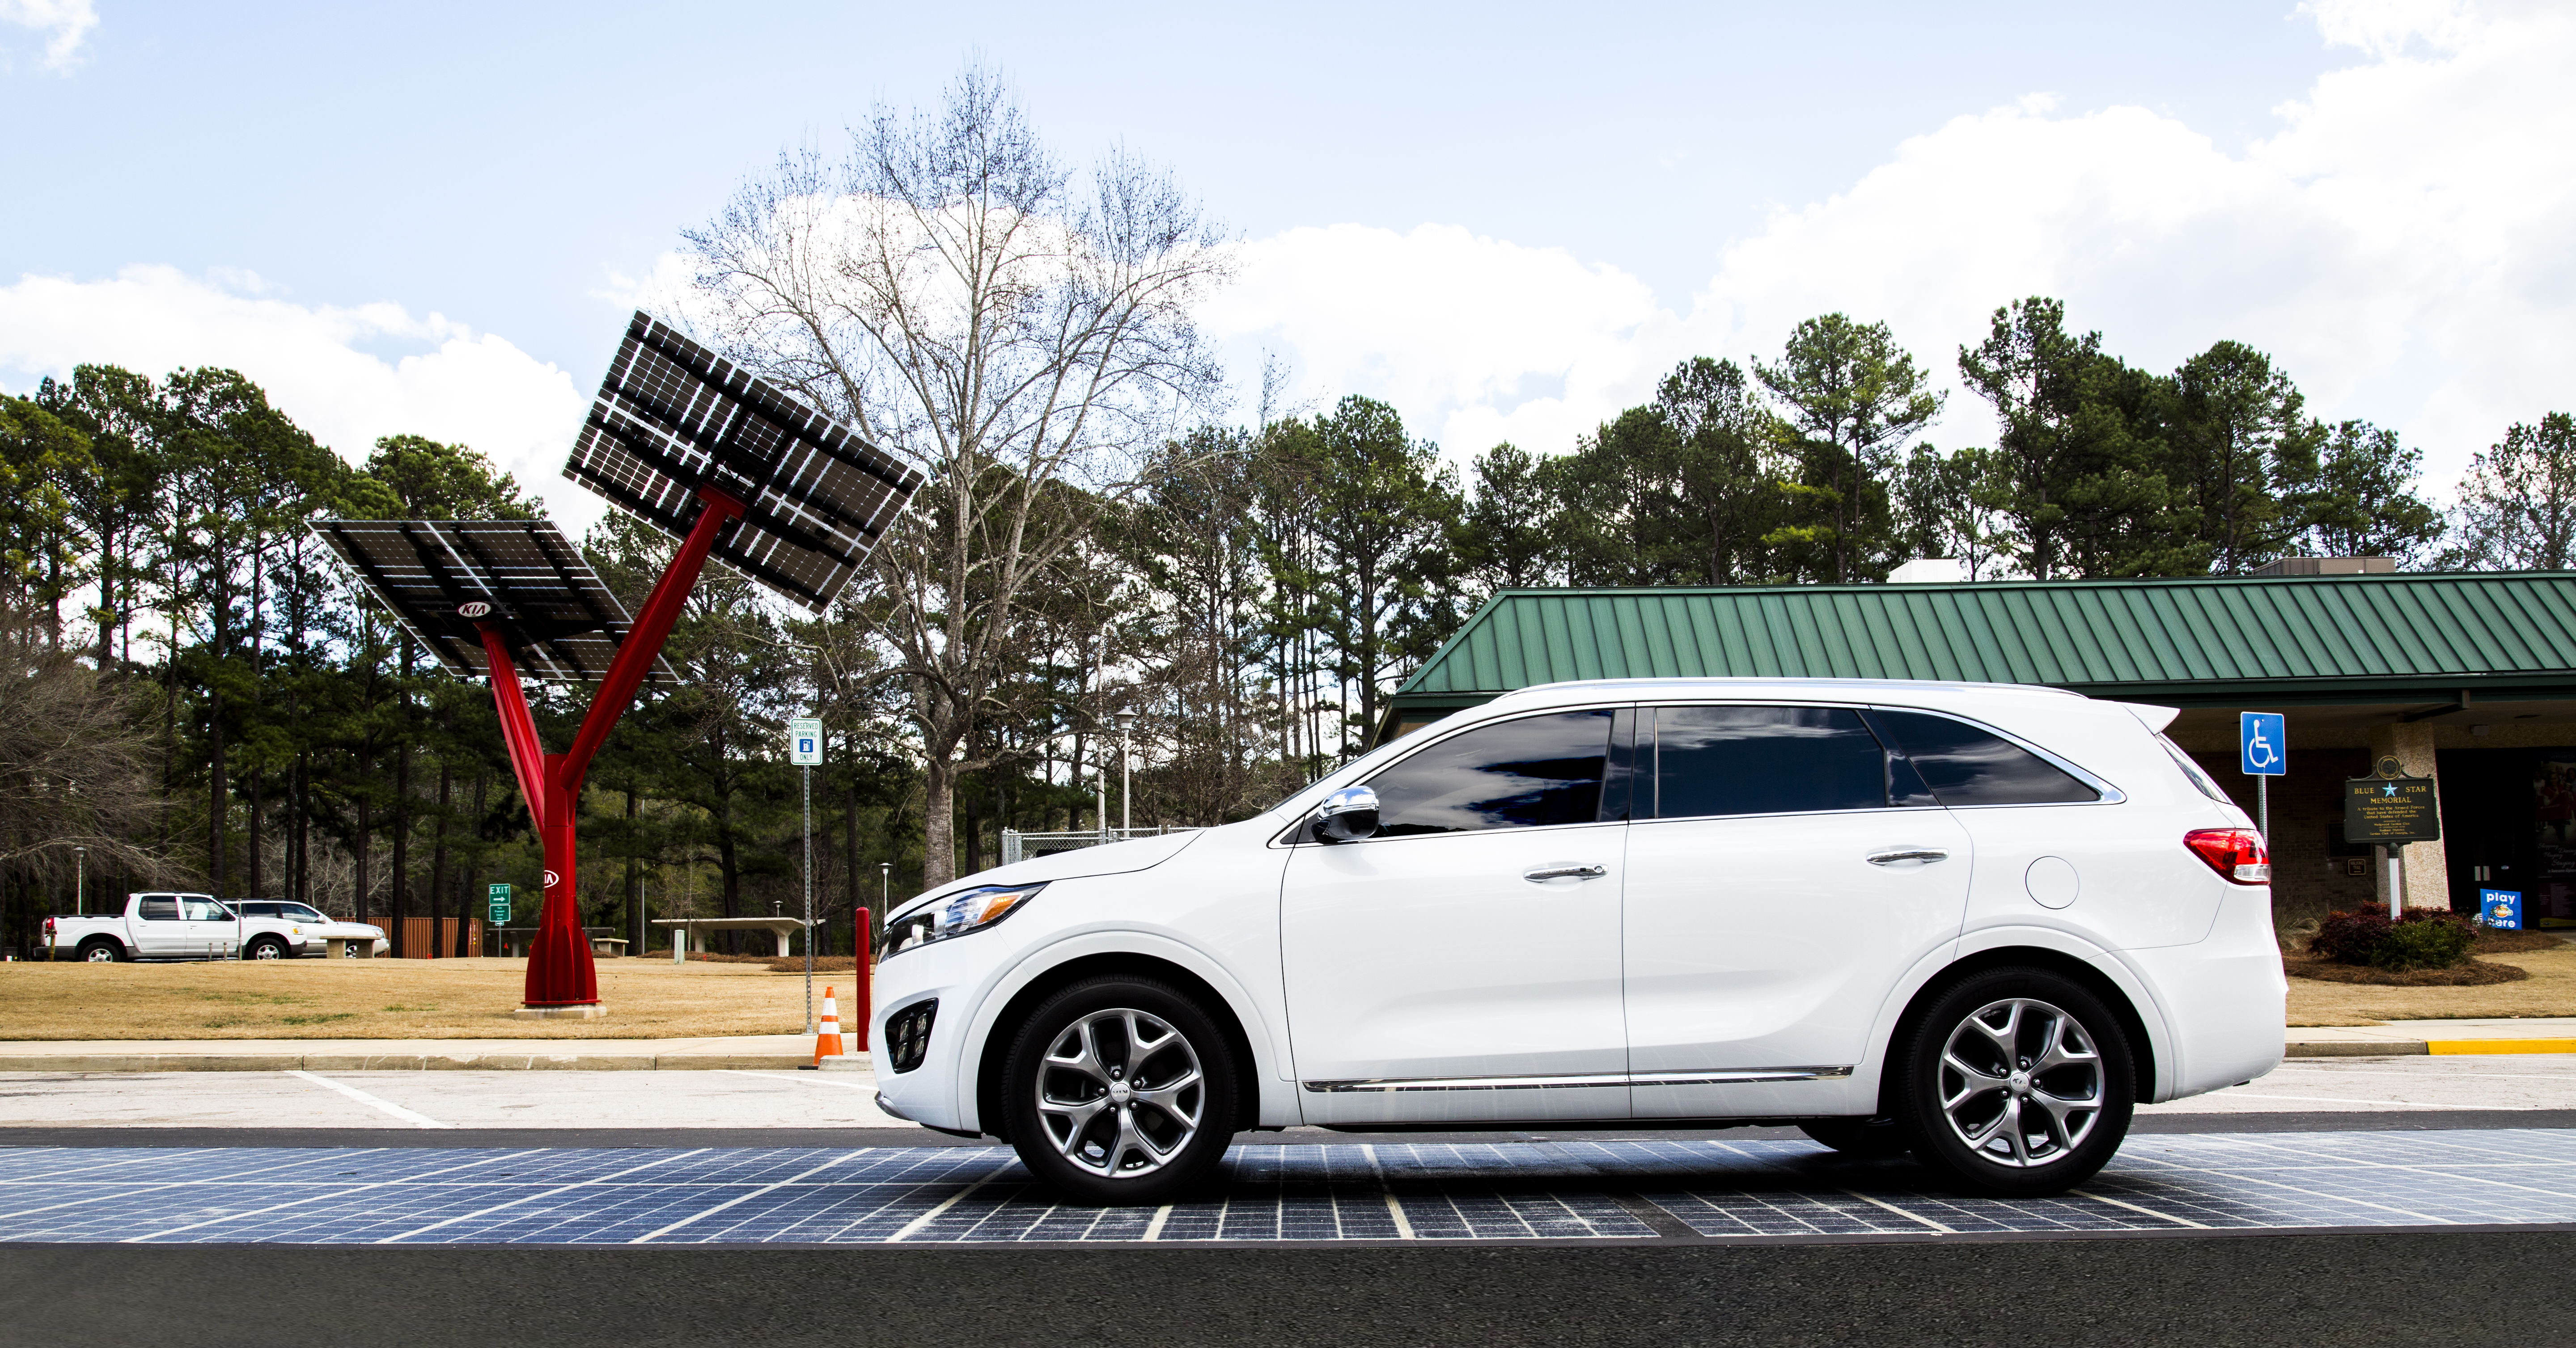 In rural Georgia, tomorrow's smart, sustainable, solar highway is being built today